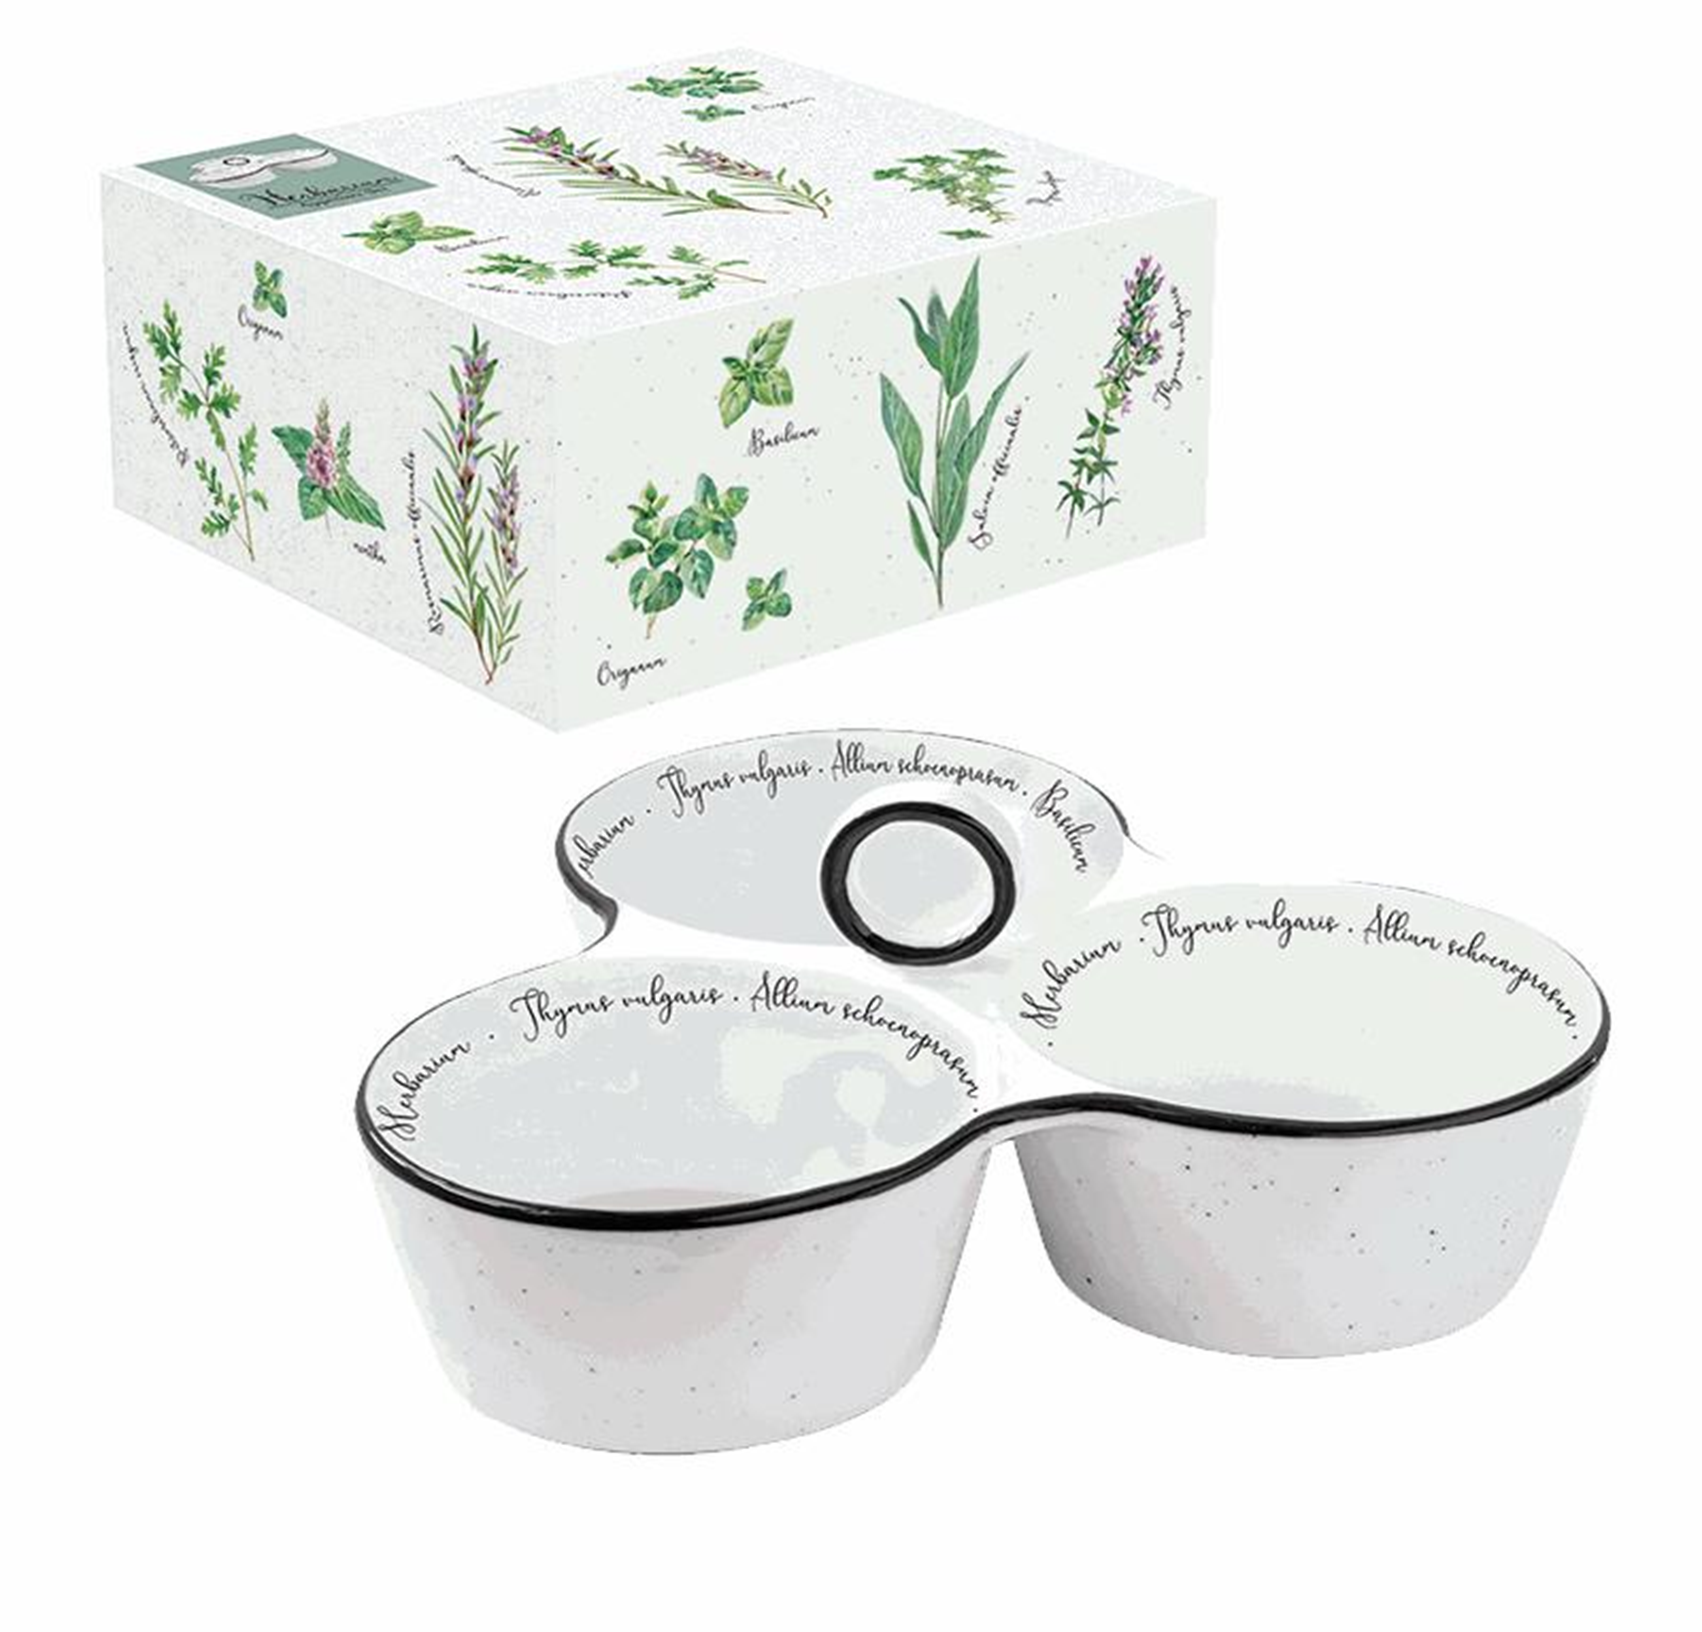 Porcelain appetizer set with a handle